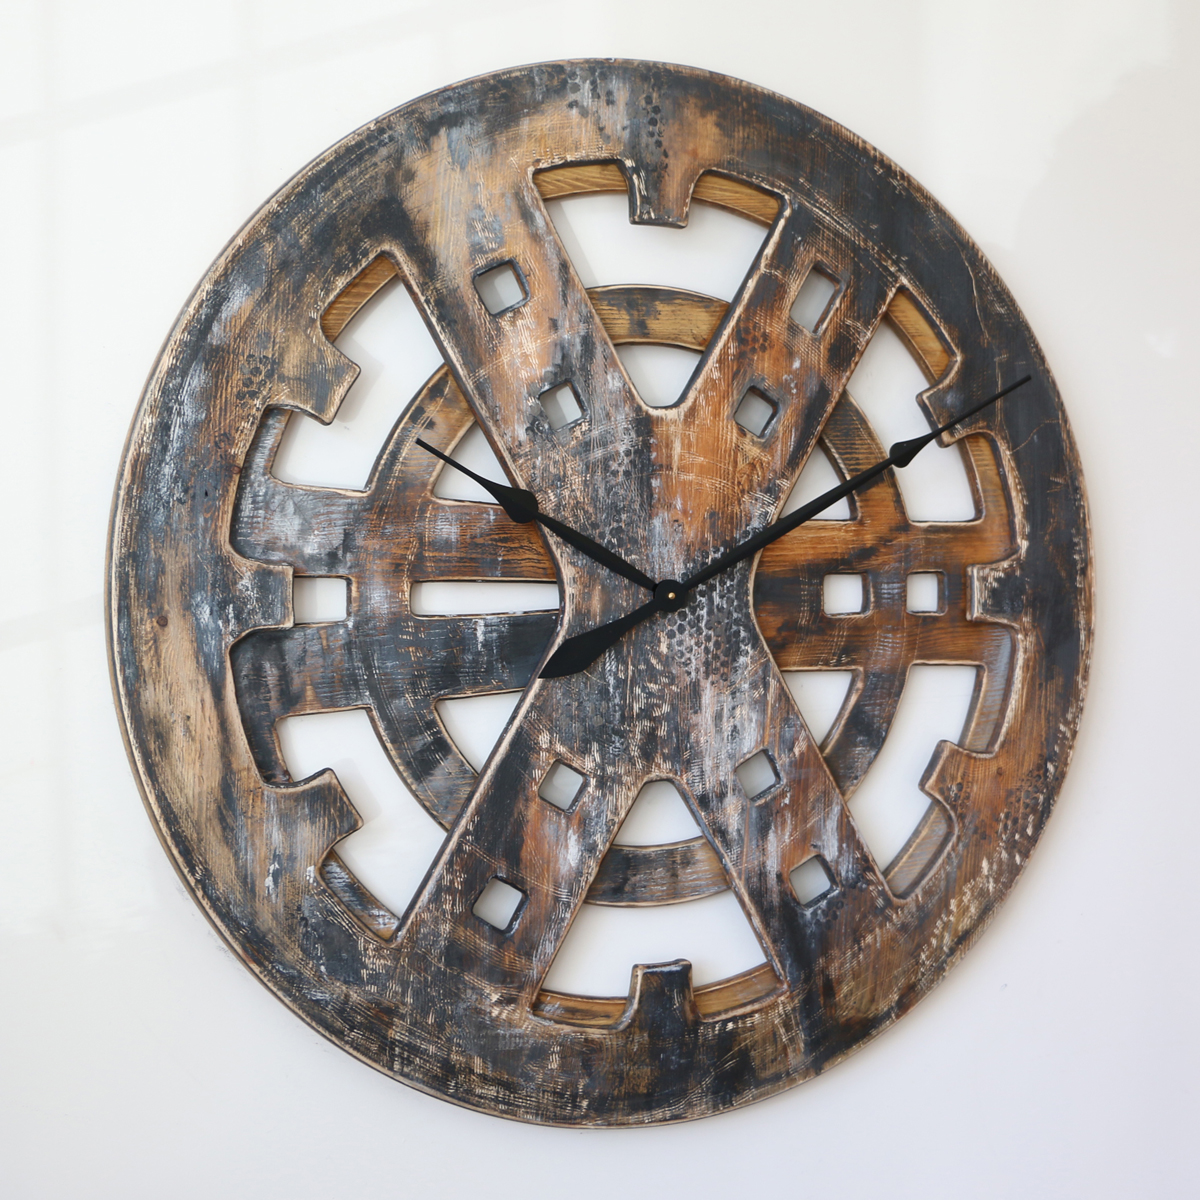 Industrial Clock Handmade From Wood And Hand Painted